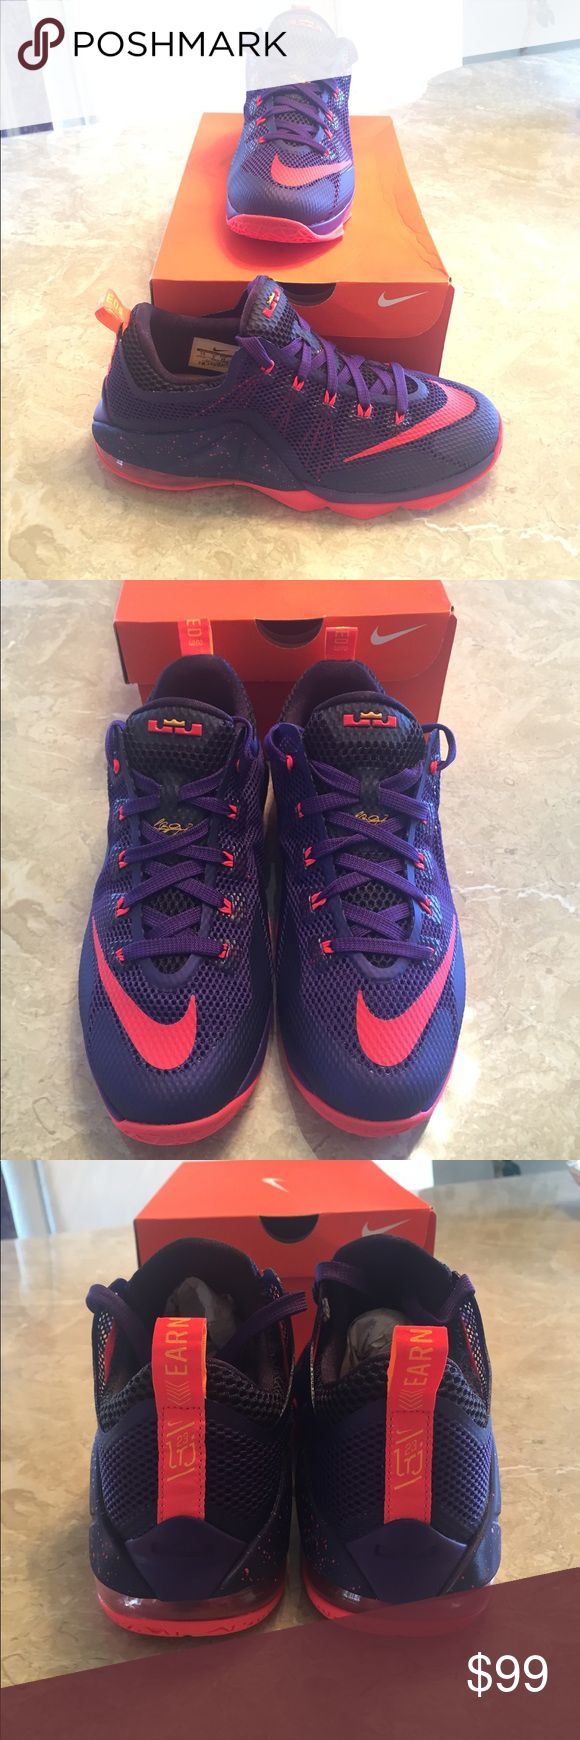 a94891a64c006 ... top quality brand new nike lebron 12 court purple nike lebron 12 court purple  shoes.